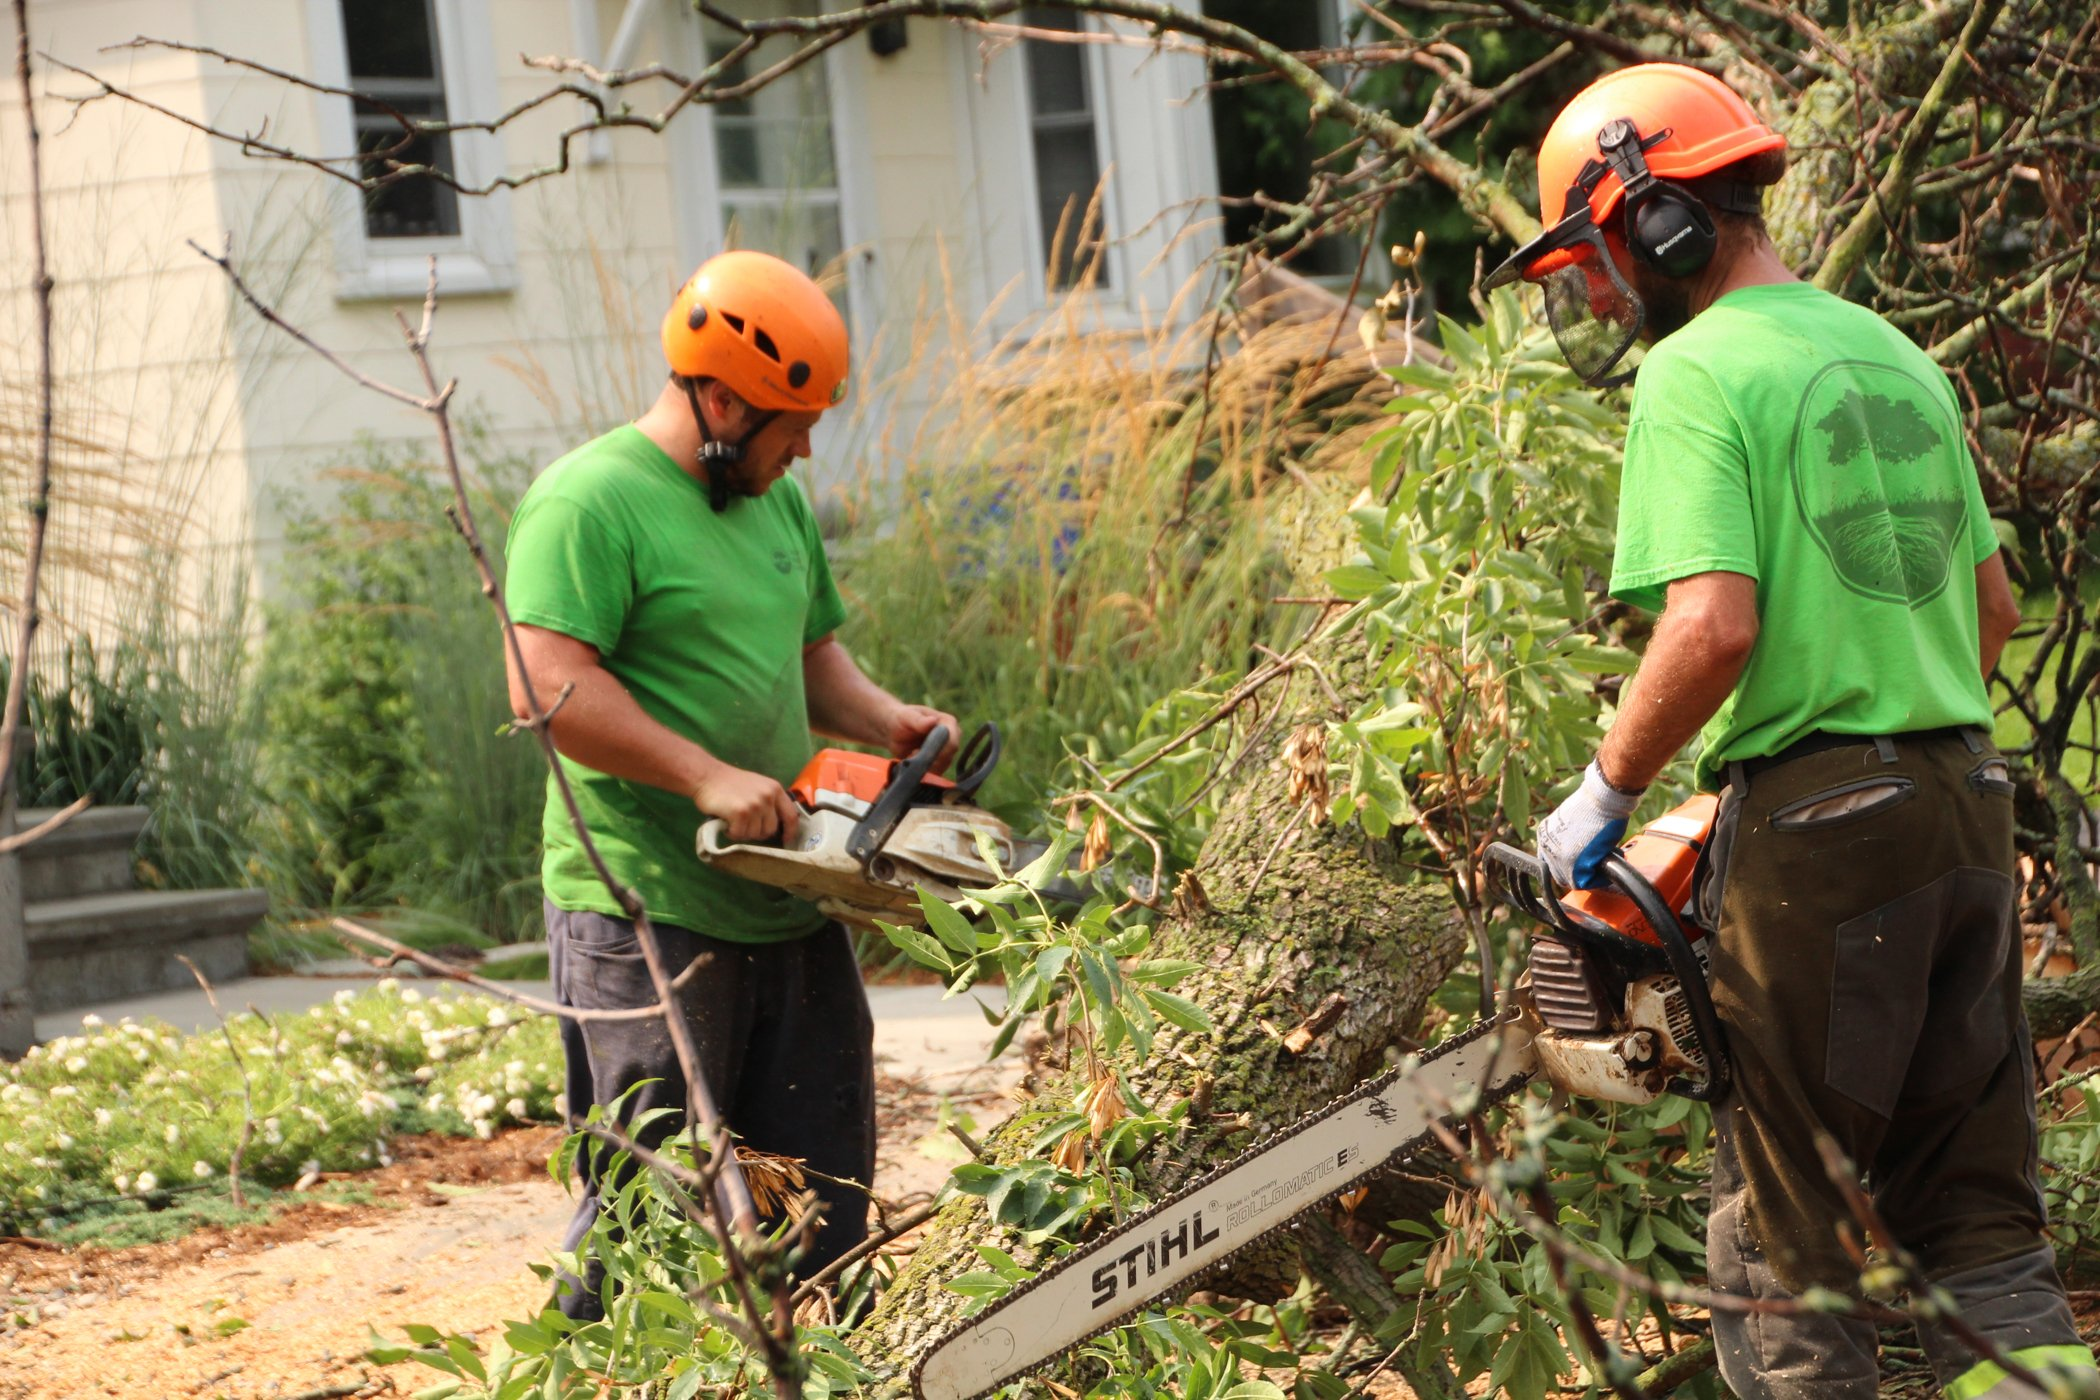 Tree Removal Experts At Base Of Tree To Remove Excess Branches